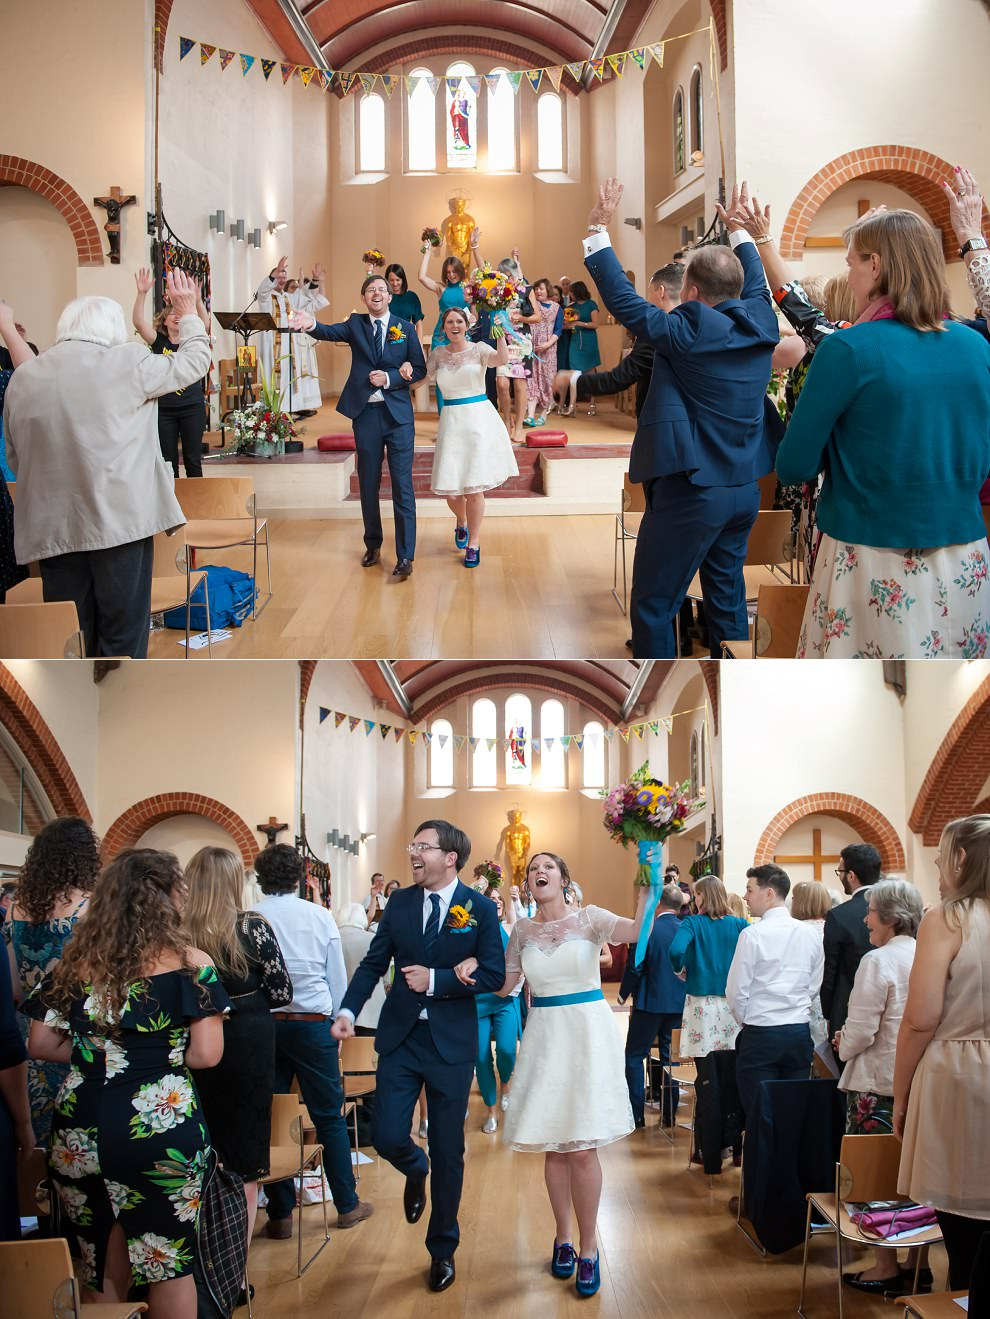 Happy bride and groom ceremony exit | South London wedding photographers